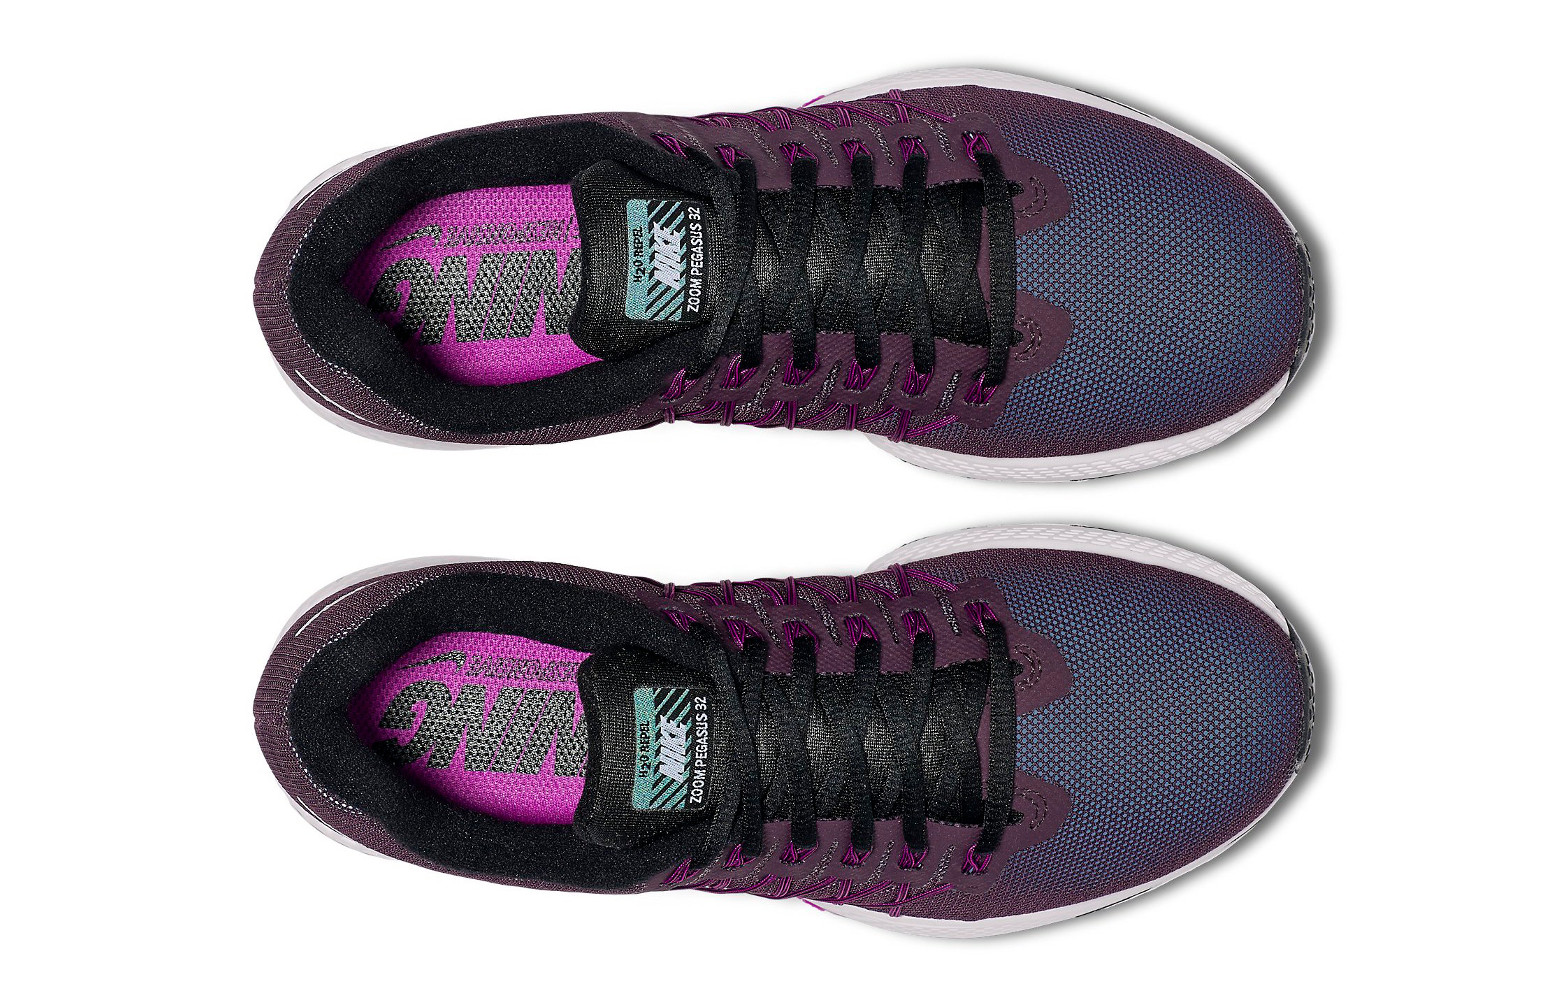 Nike Zoom Air Pegasus 32 Flash Mazar Viola P0orQ